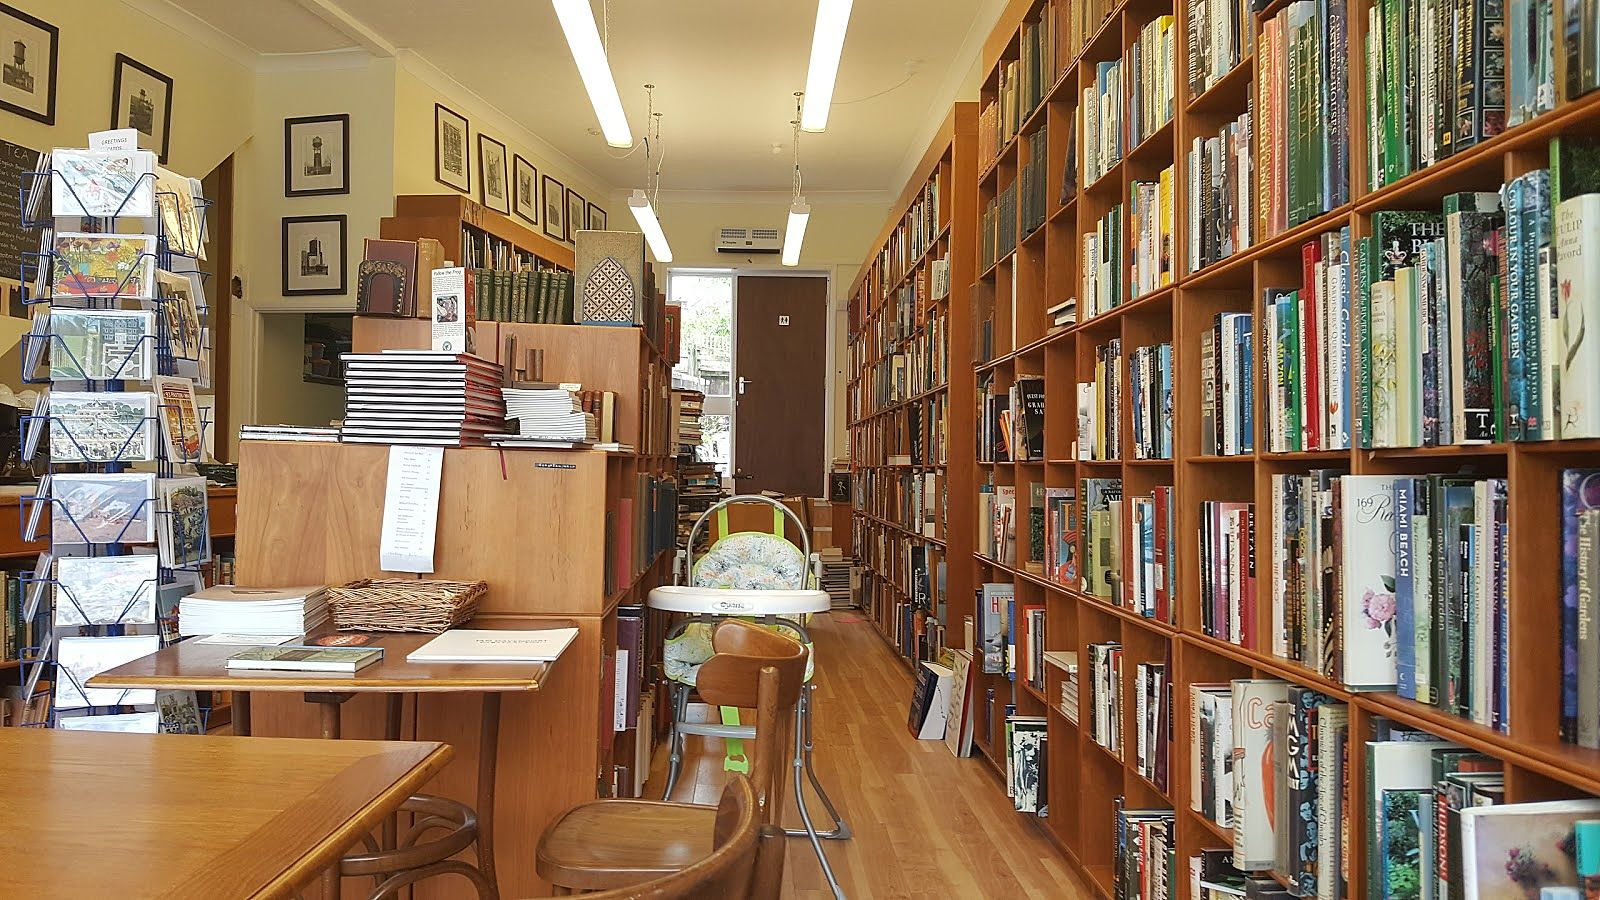 Halcyon Books (Lee High Road), London, United Kingdom recommendation by @lemi in Finders Keepers, Readers!   Lemi - Discover and Shop Local